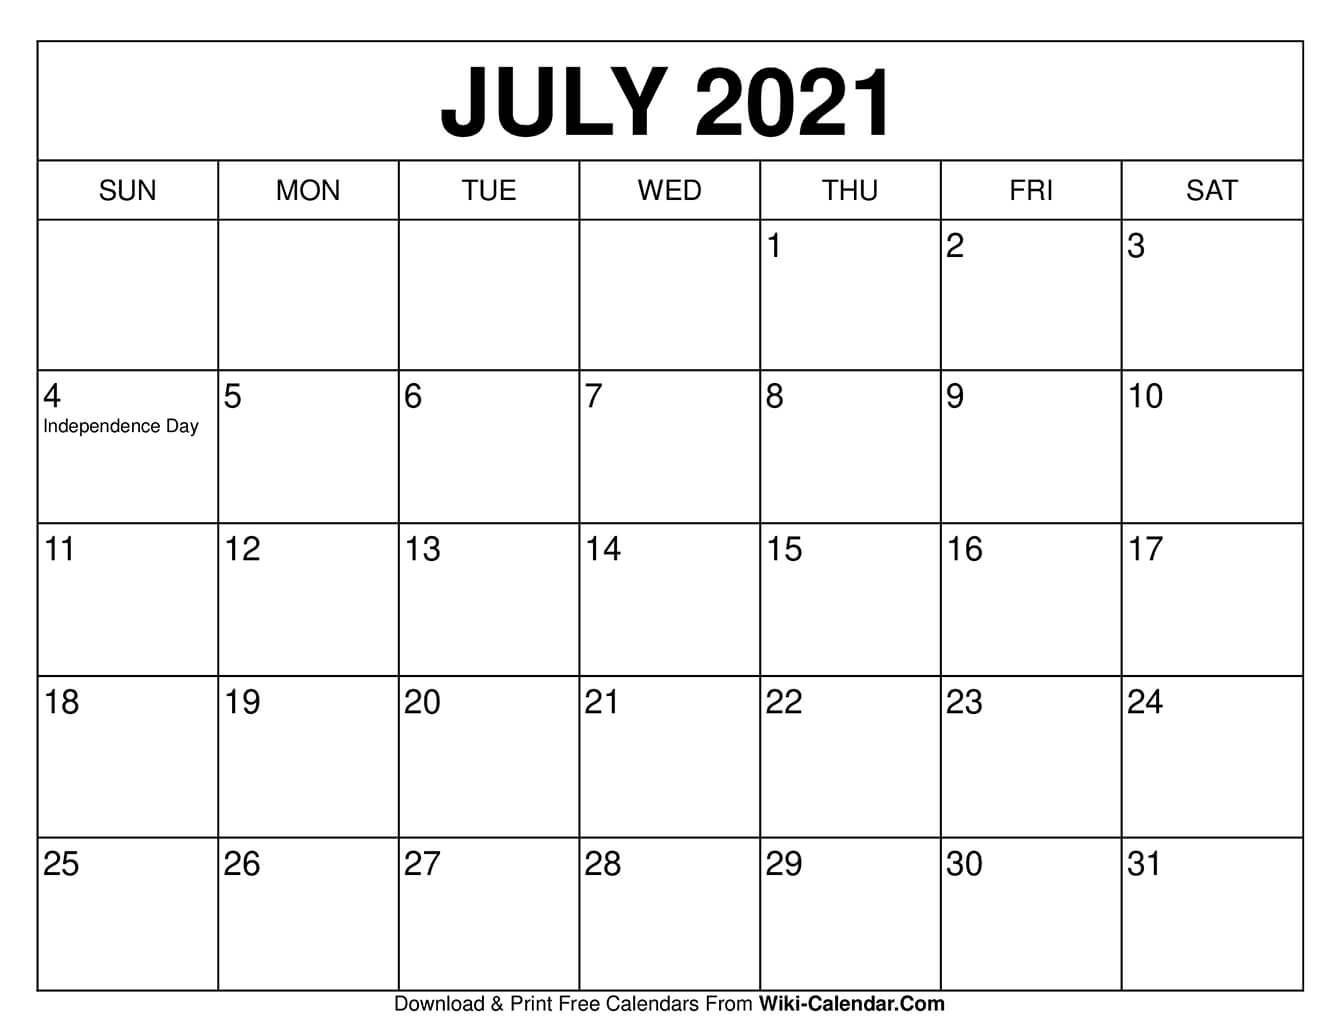 Printable Calendar For July 2021 July 2021 Calendar in 2021 | Free calendars to print, Calendar